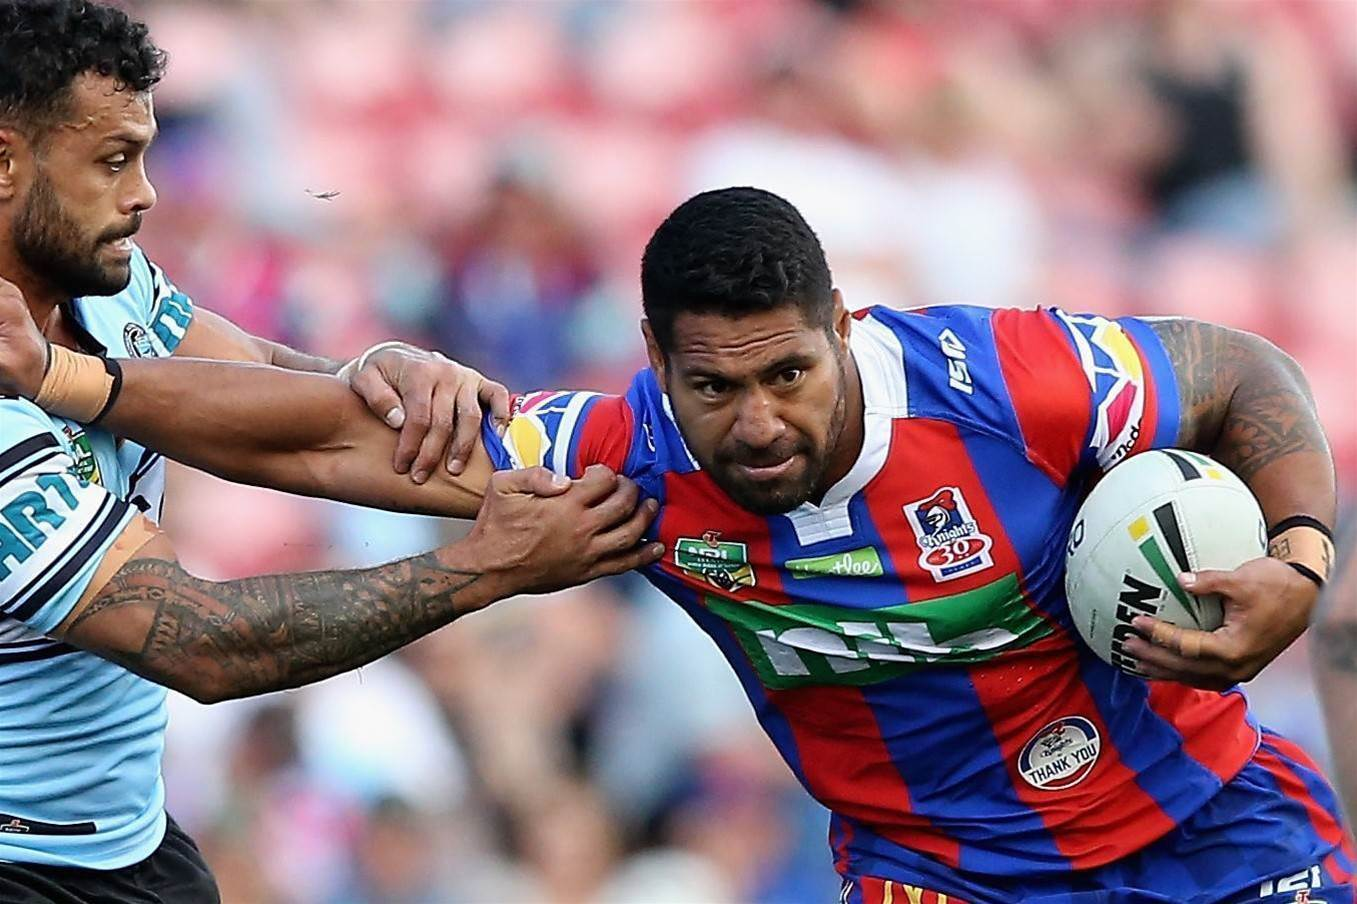 Paea lifts lid on 'heartbreaking' Knights exit